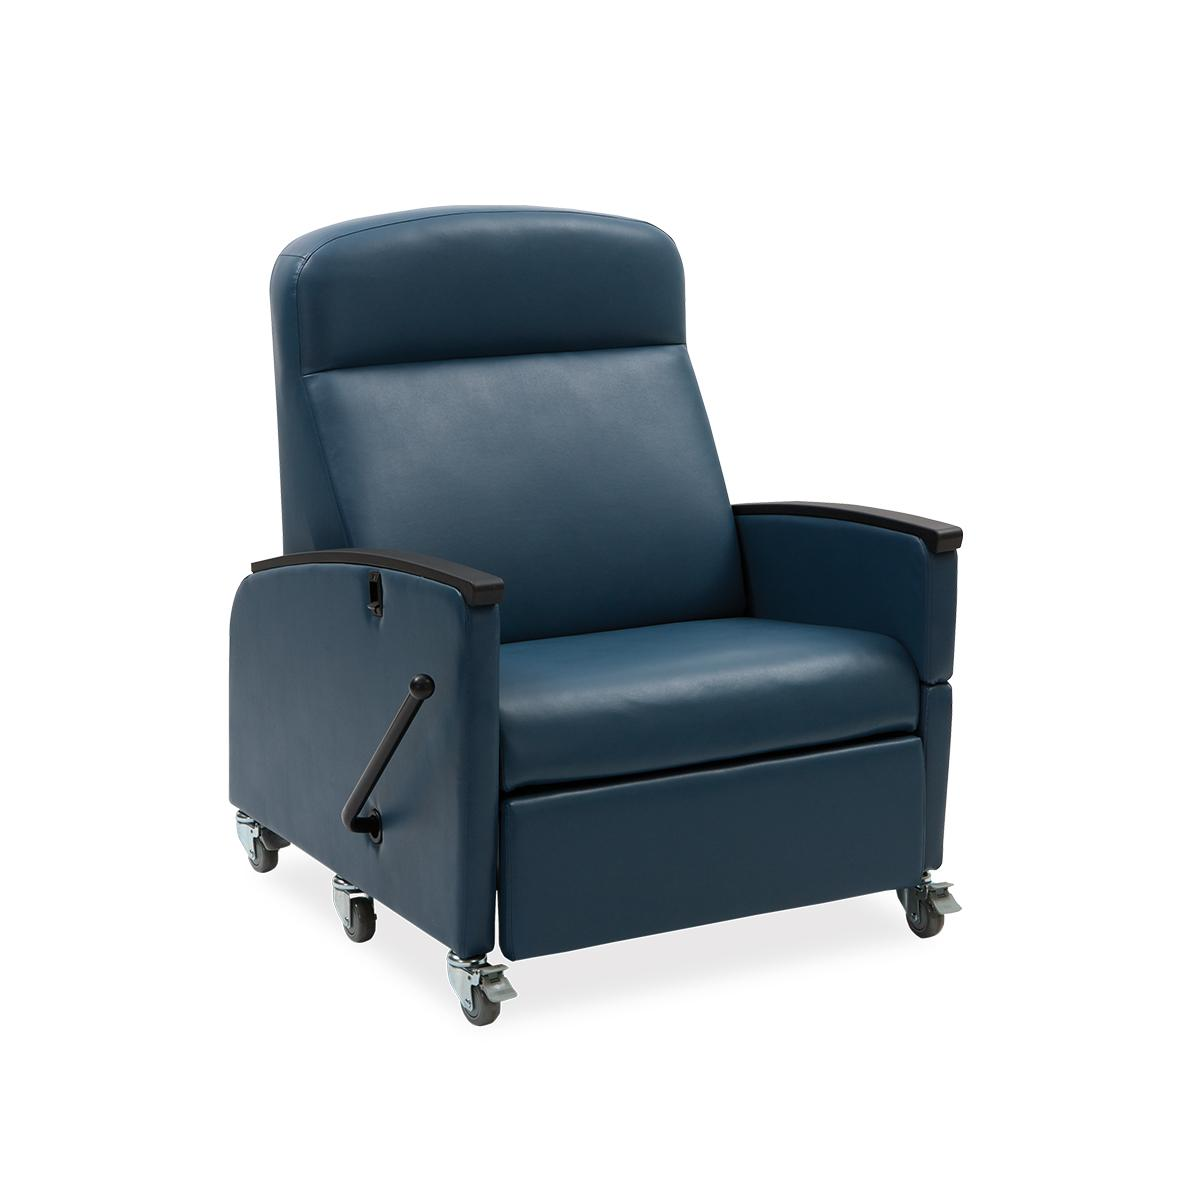 Art of Care Manual Bariatric Recliner, navy, 3/4 view